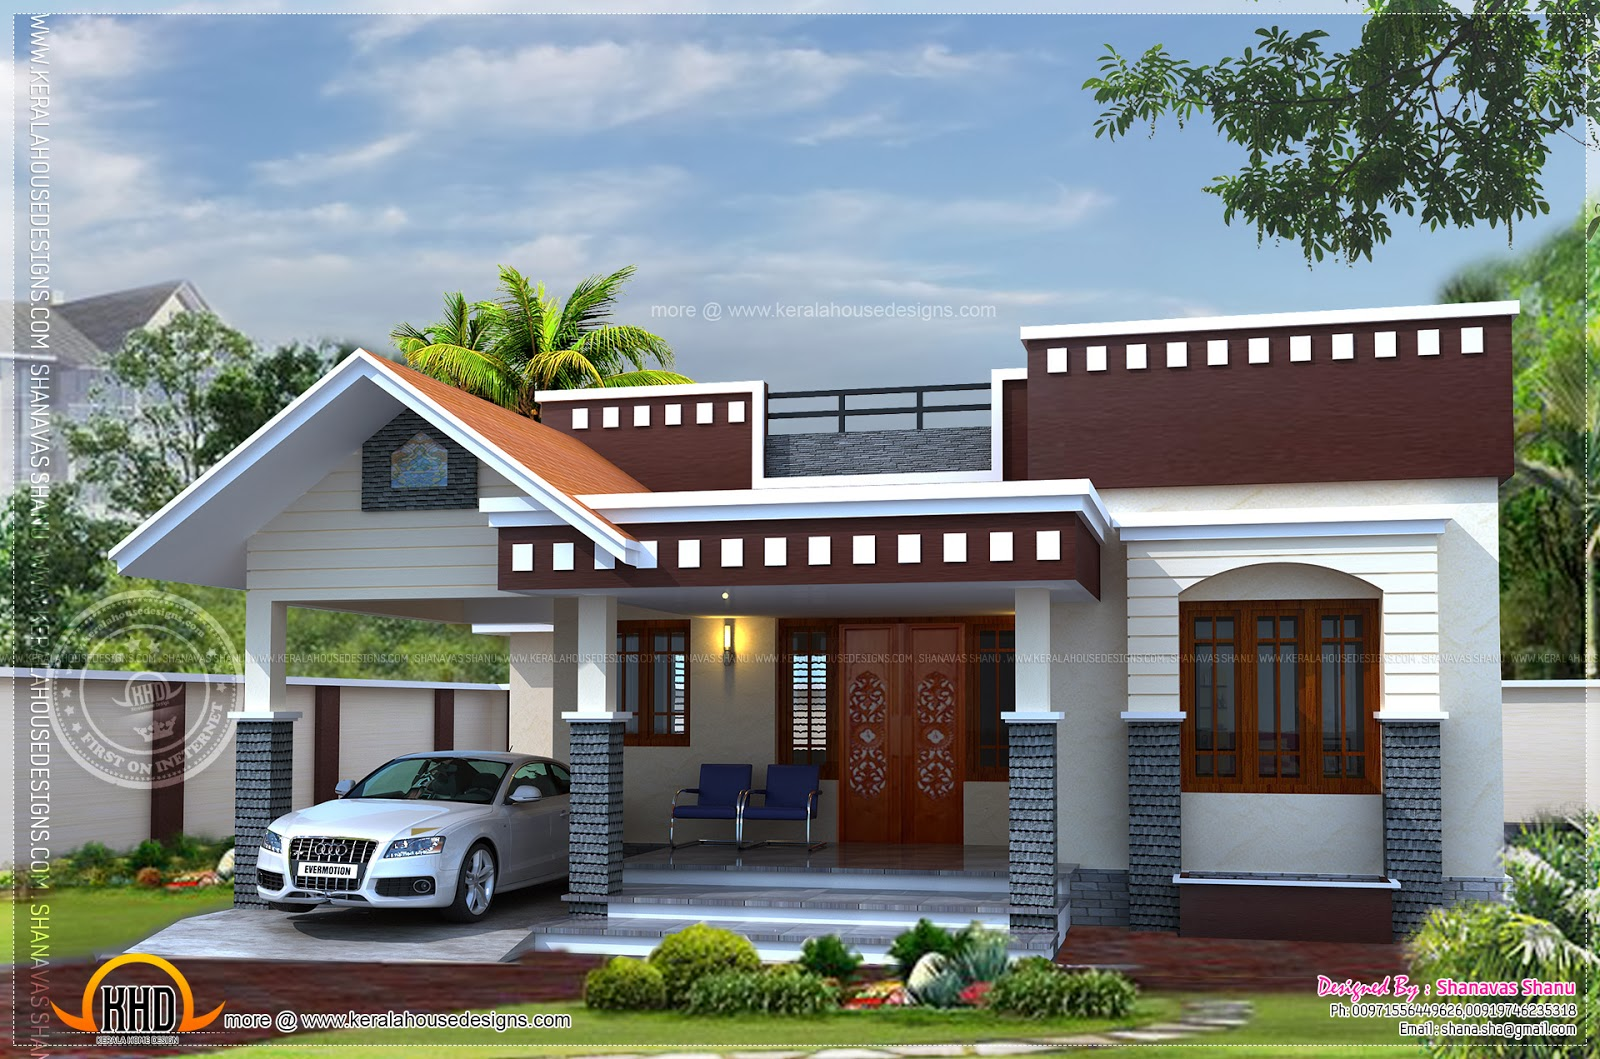 Home plan of small house kerala home design and floor plans for 3000 sq ft house cost